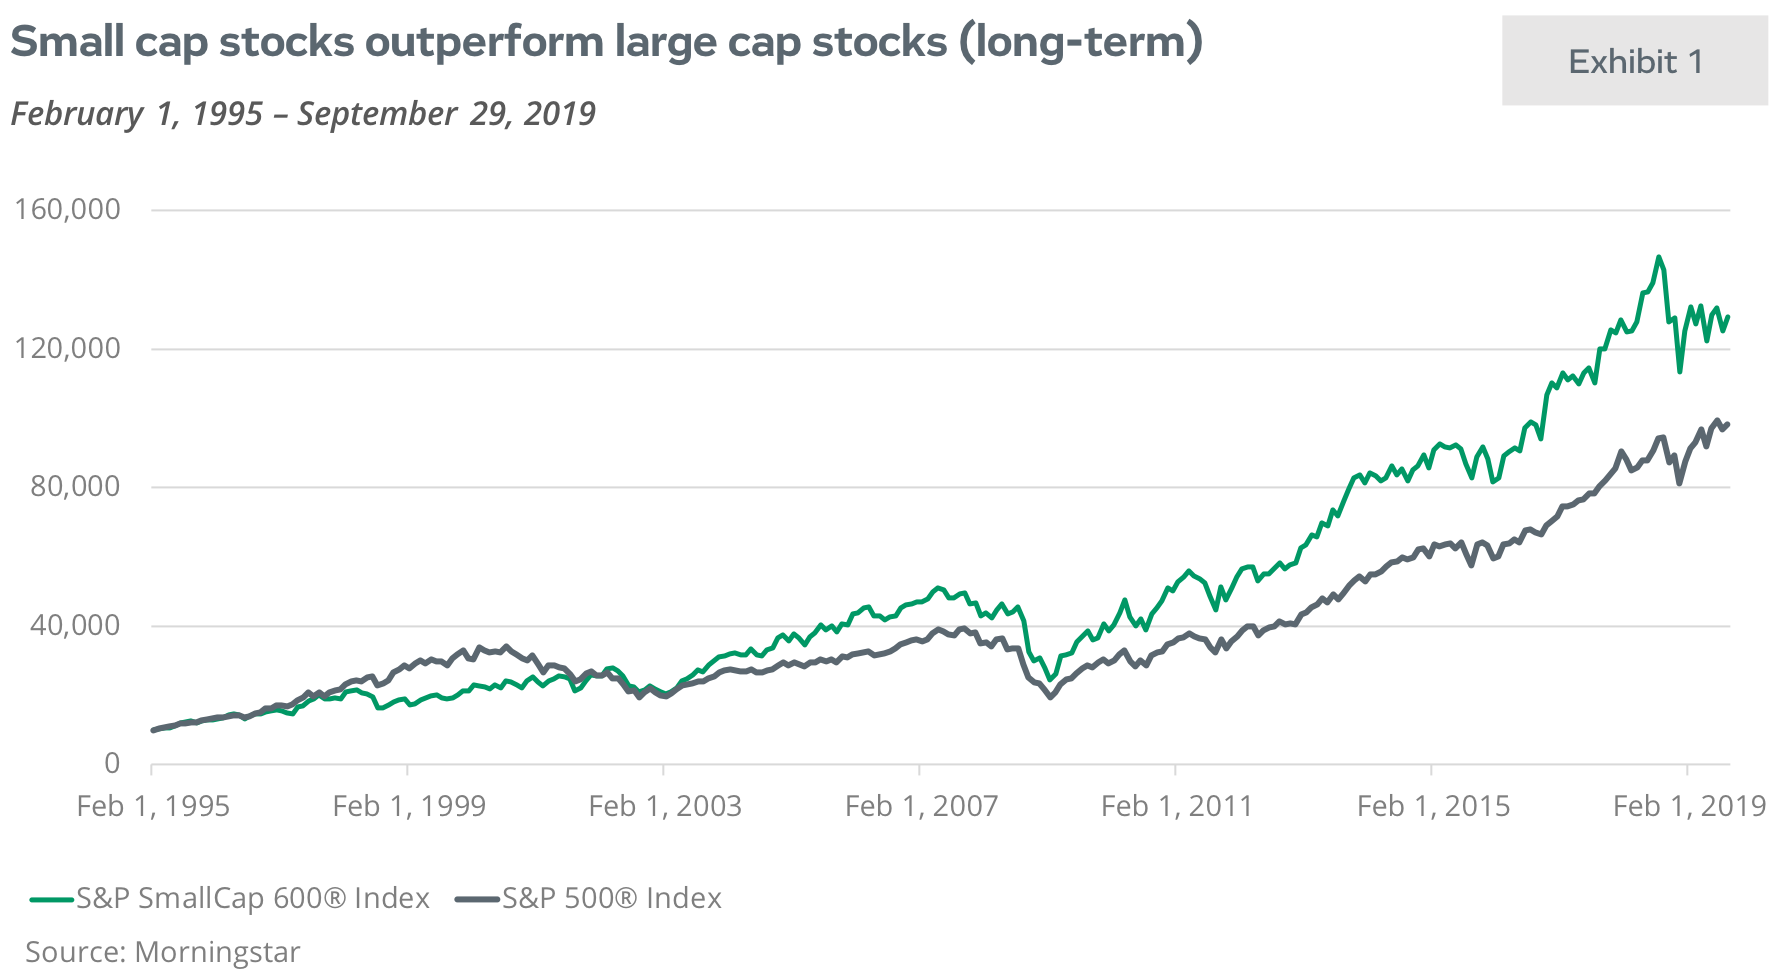 Small cap stocks outperform large cap stocks (long term)